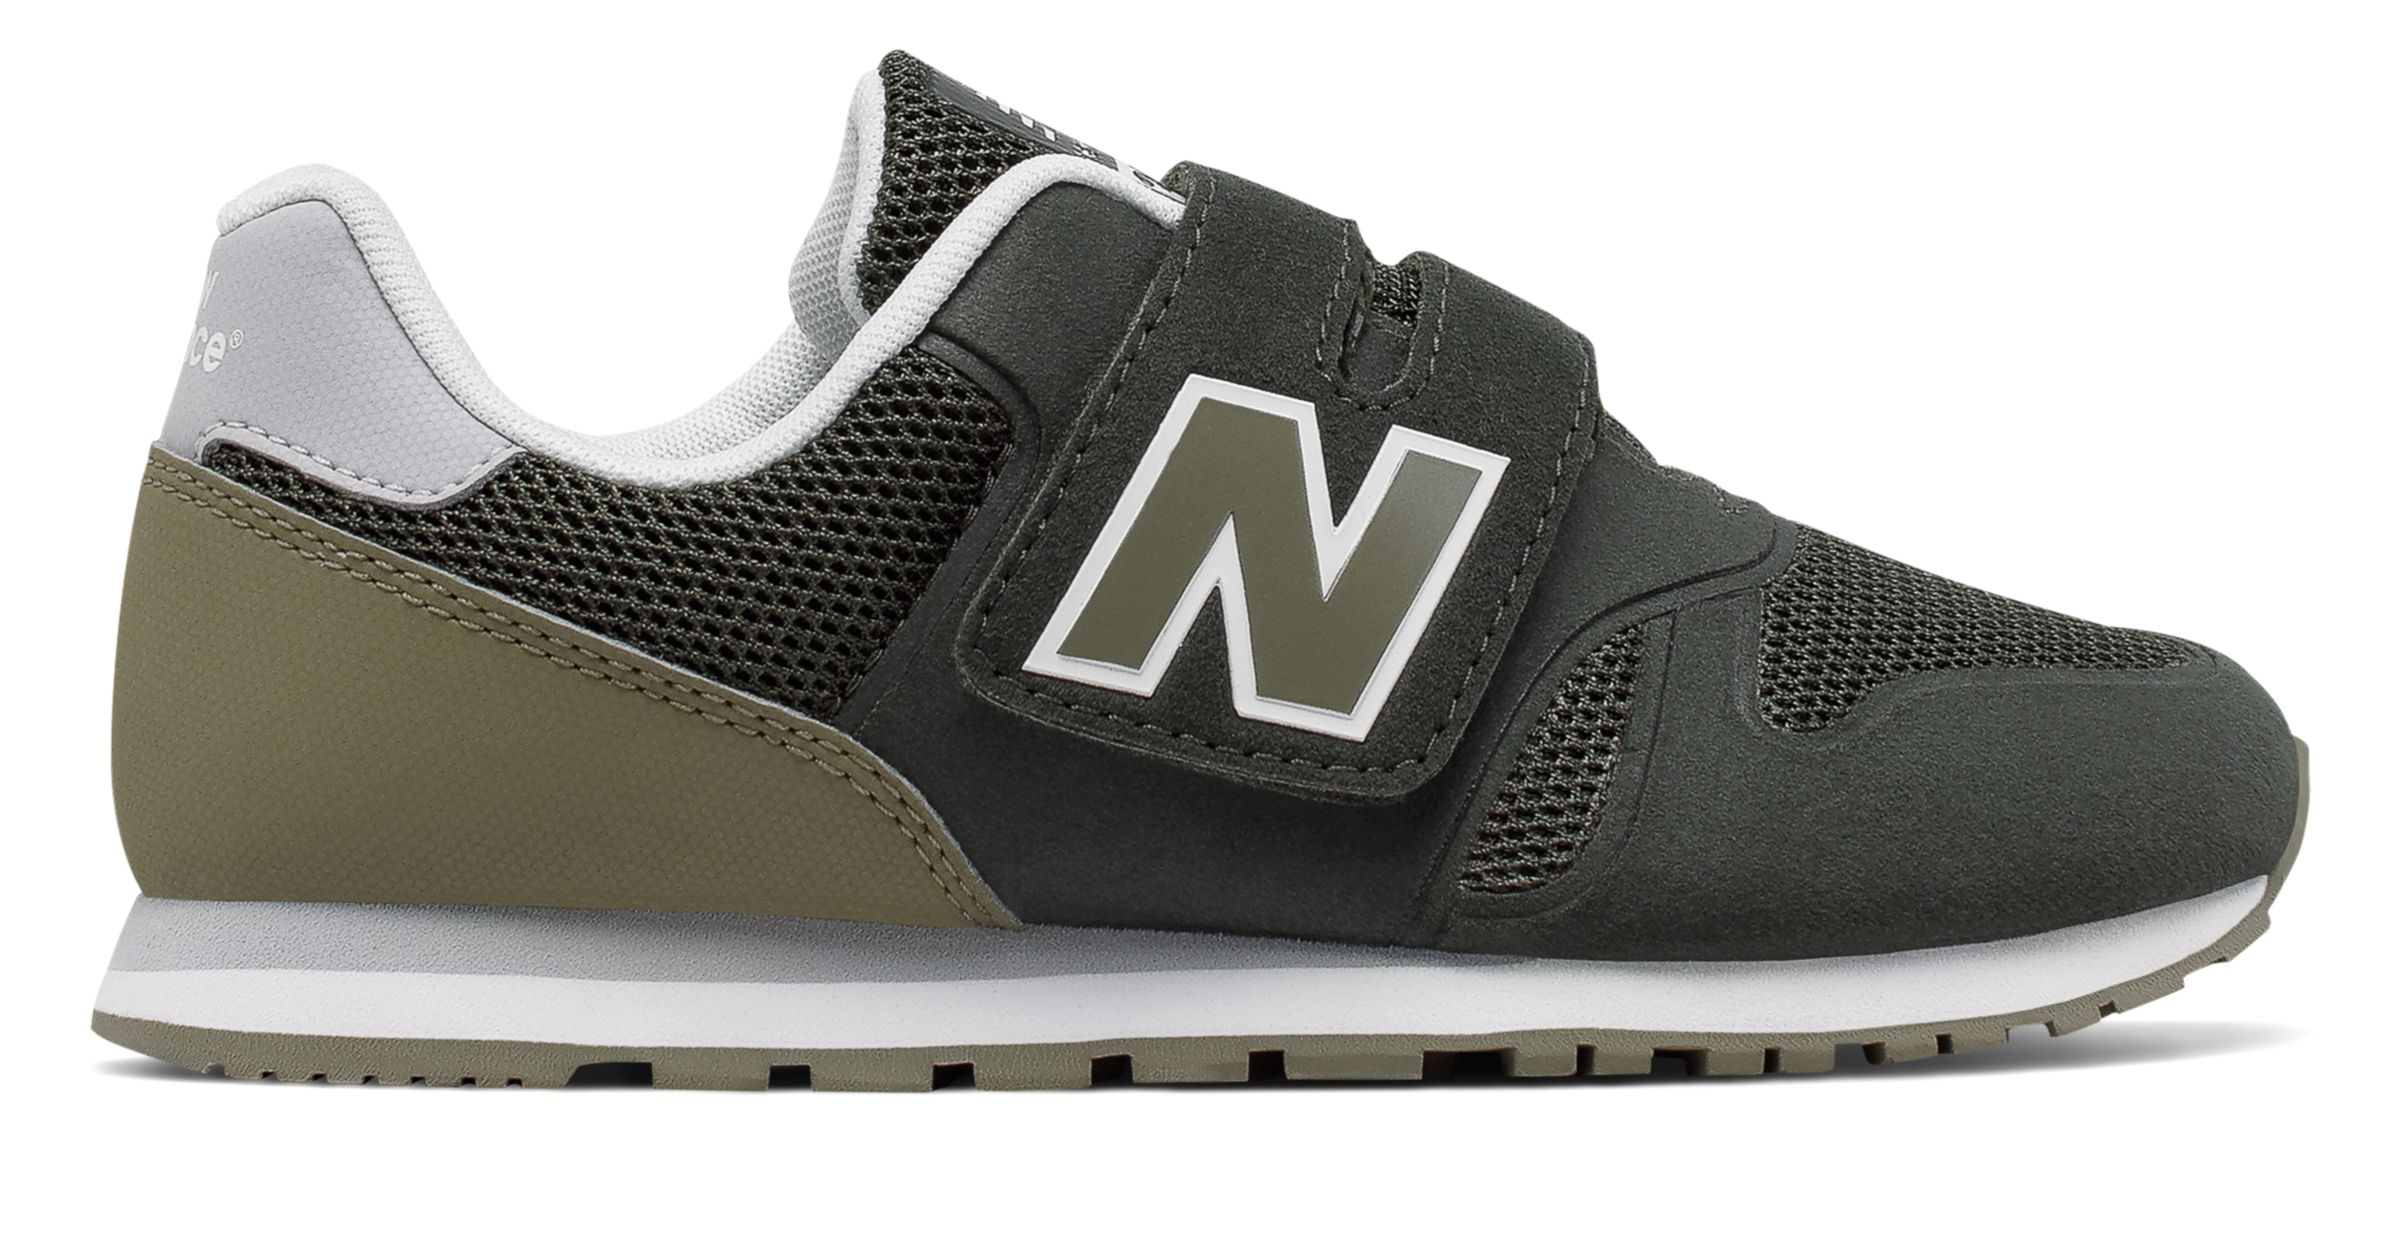 NB 373 New Balance, Green with Dark Green